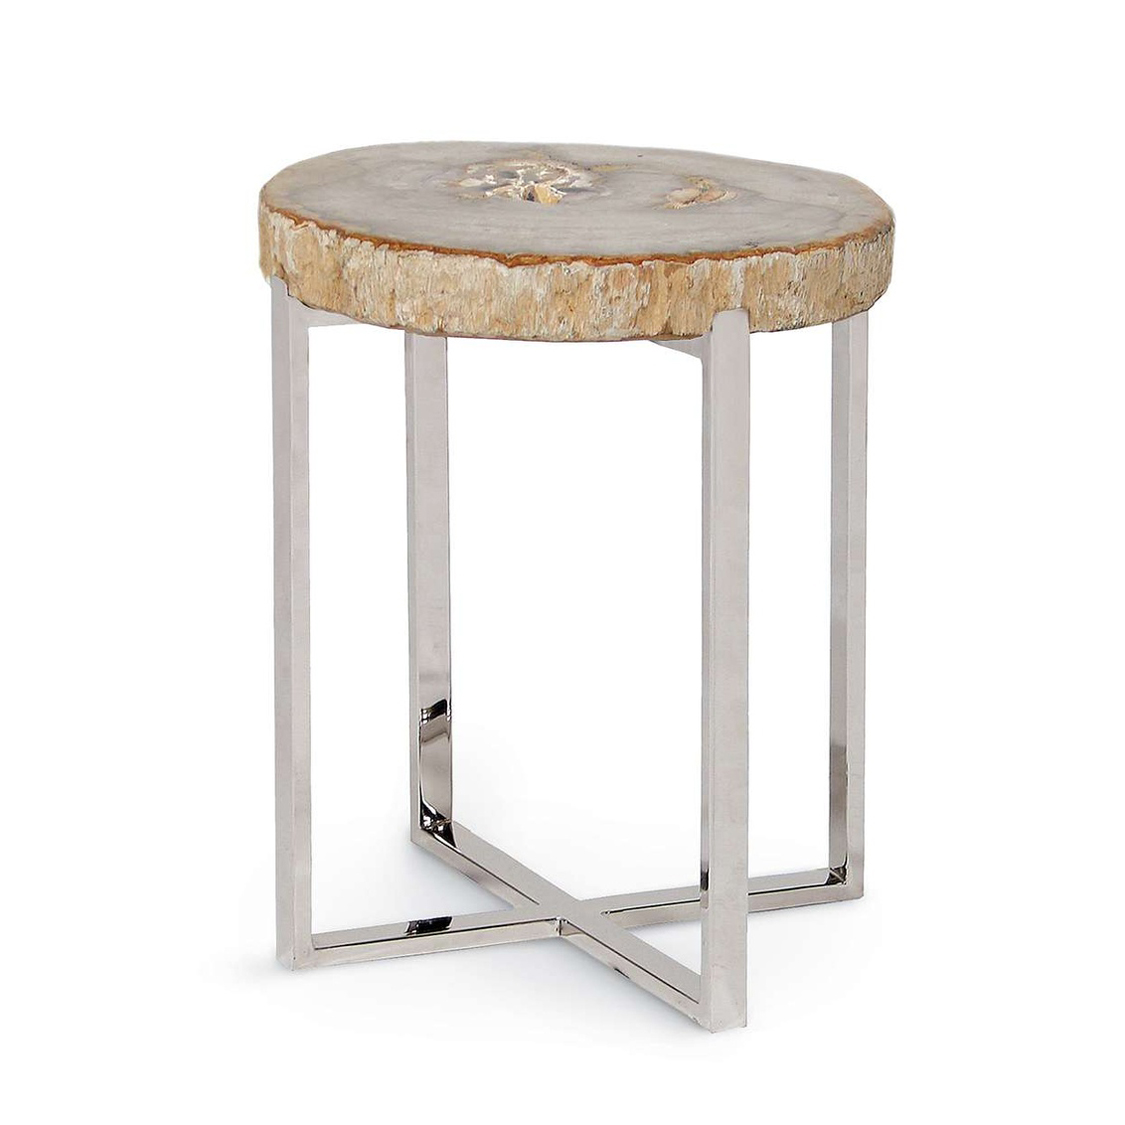 Black Forest Decor Natural artistry accent table with sta...